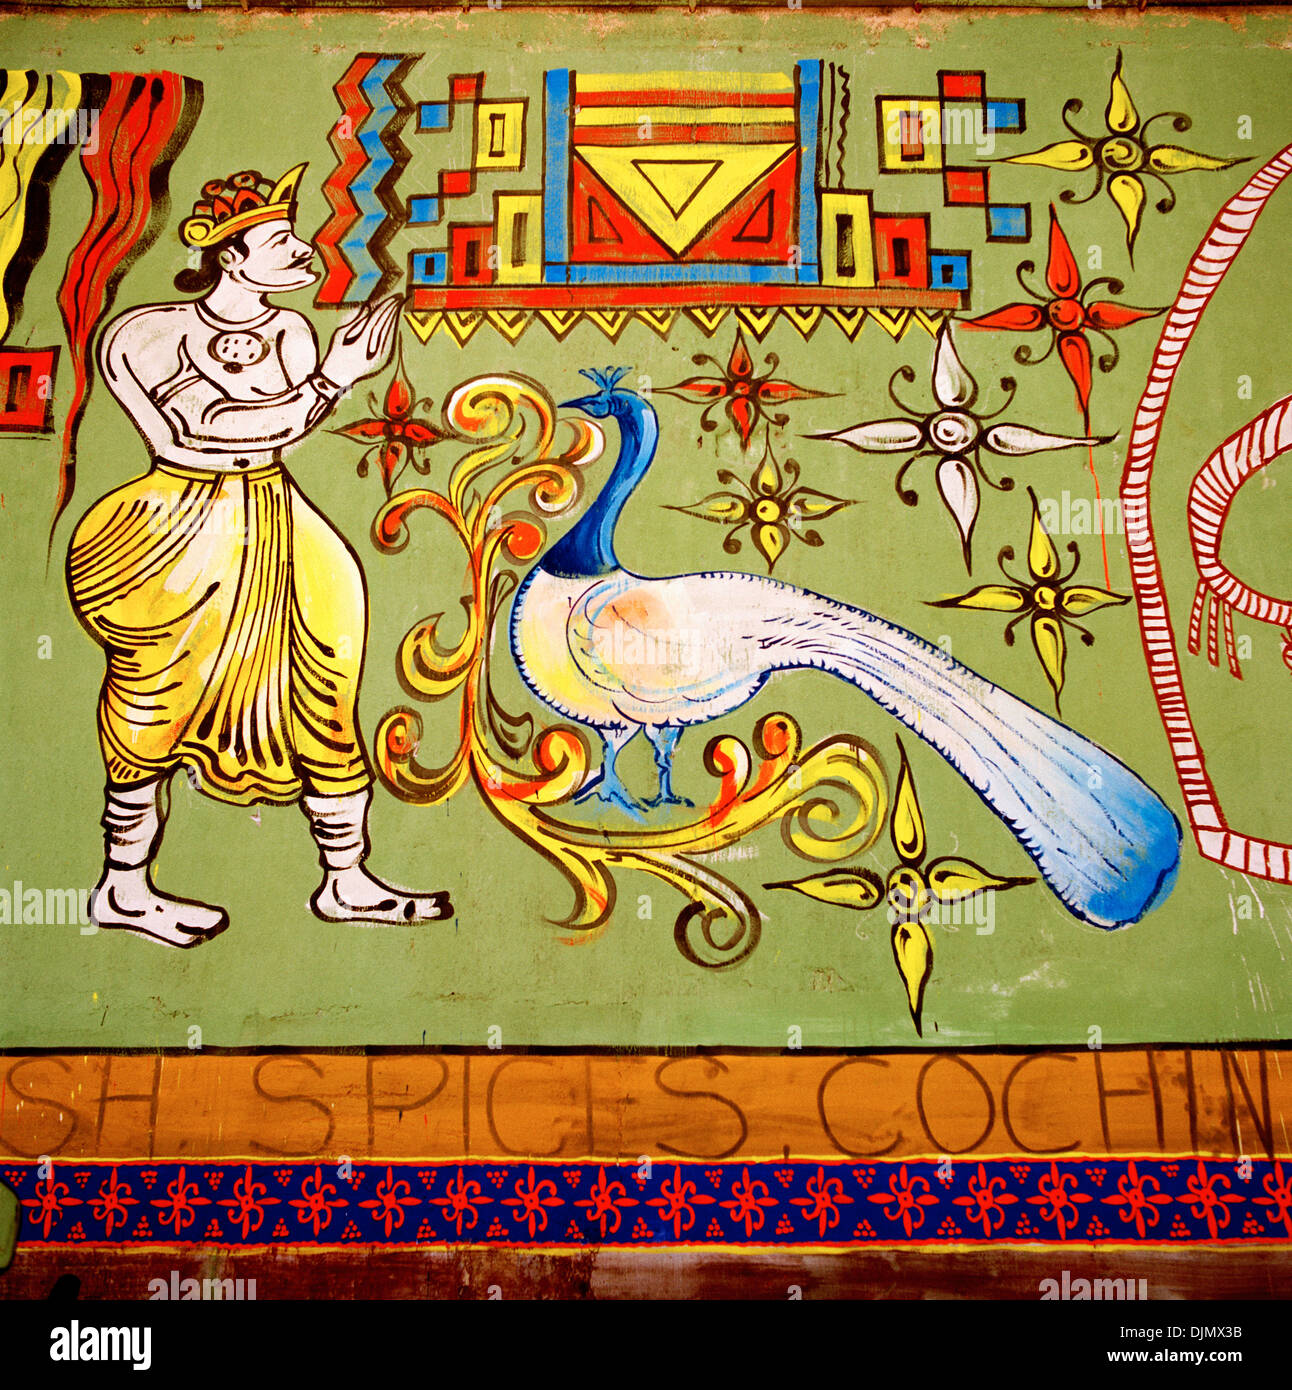 Hindu art in mattancherry fort kochi cochin in kerala in south hindu art in mattancherry fort kochi cochin in kerala in south india in asia religion religious symbol symbolism mughal moghal history beauty travel biocorpaavc Image collections